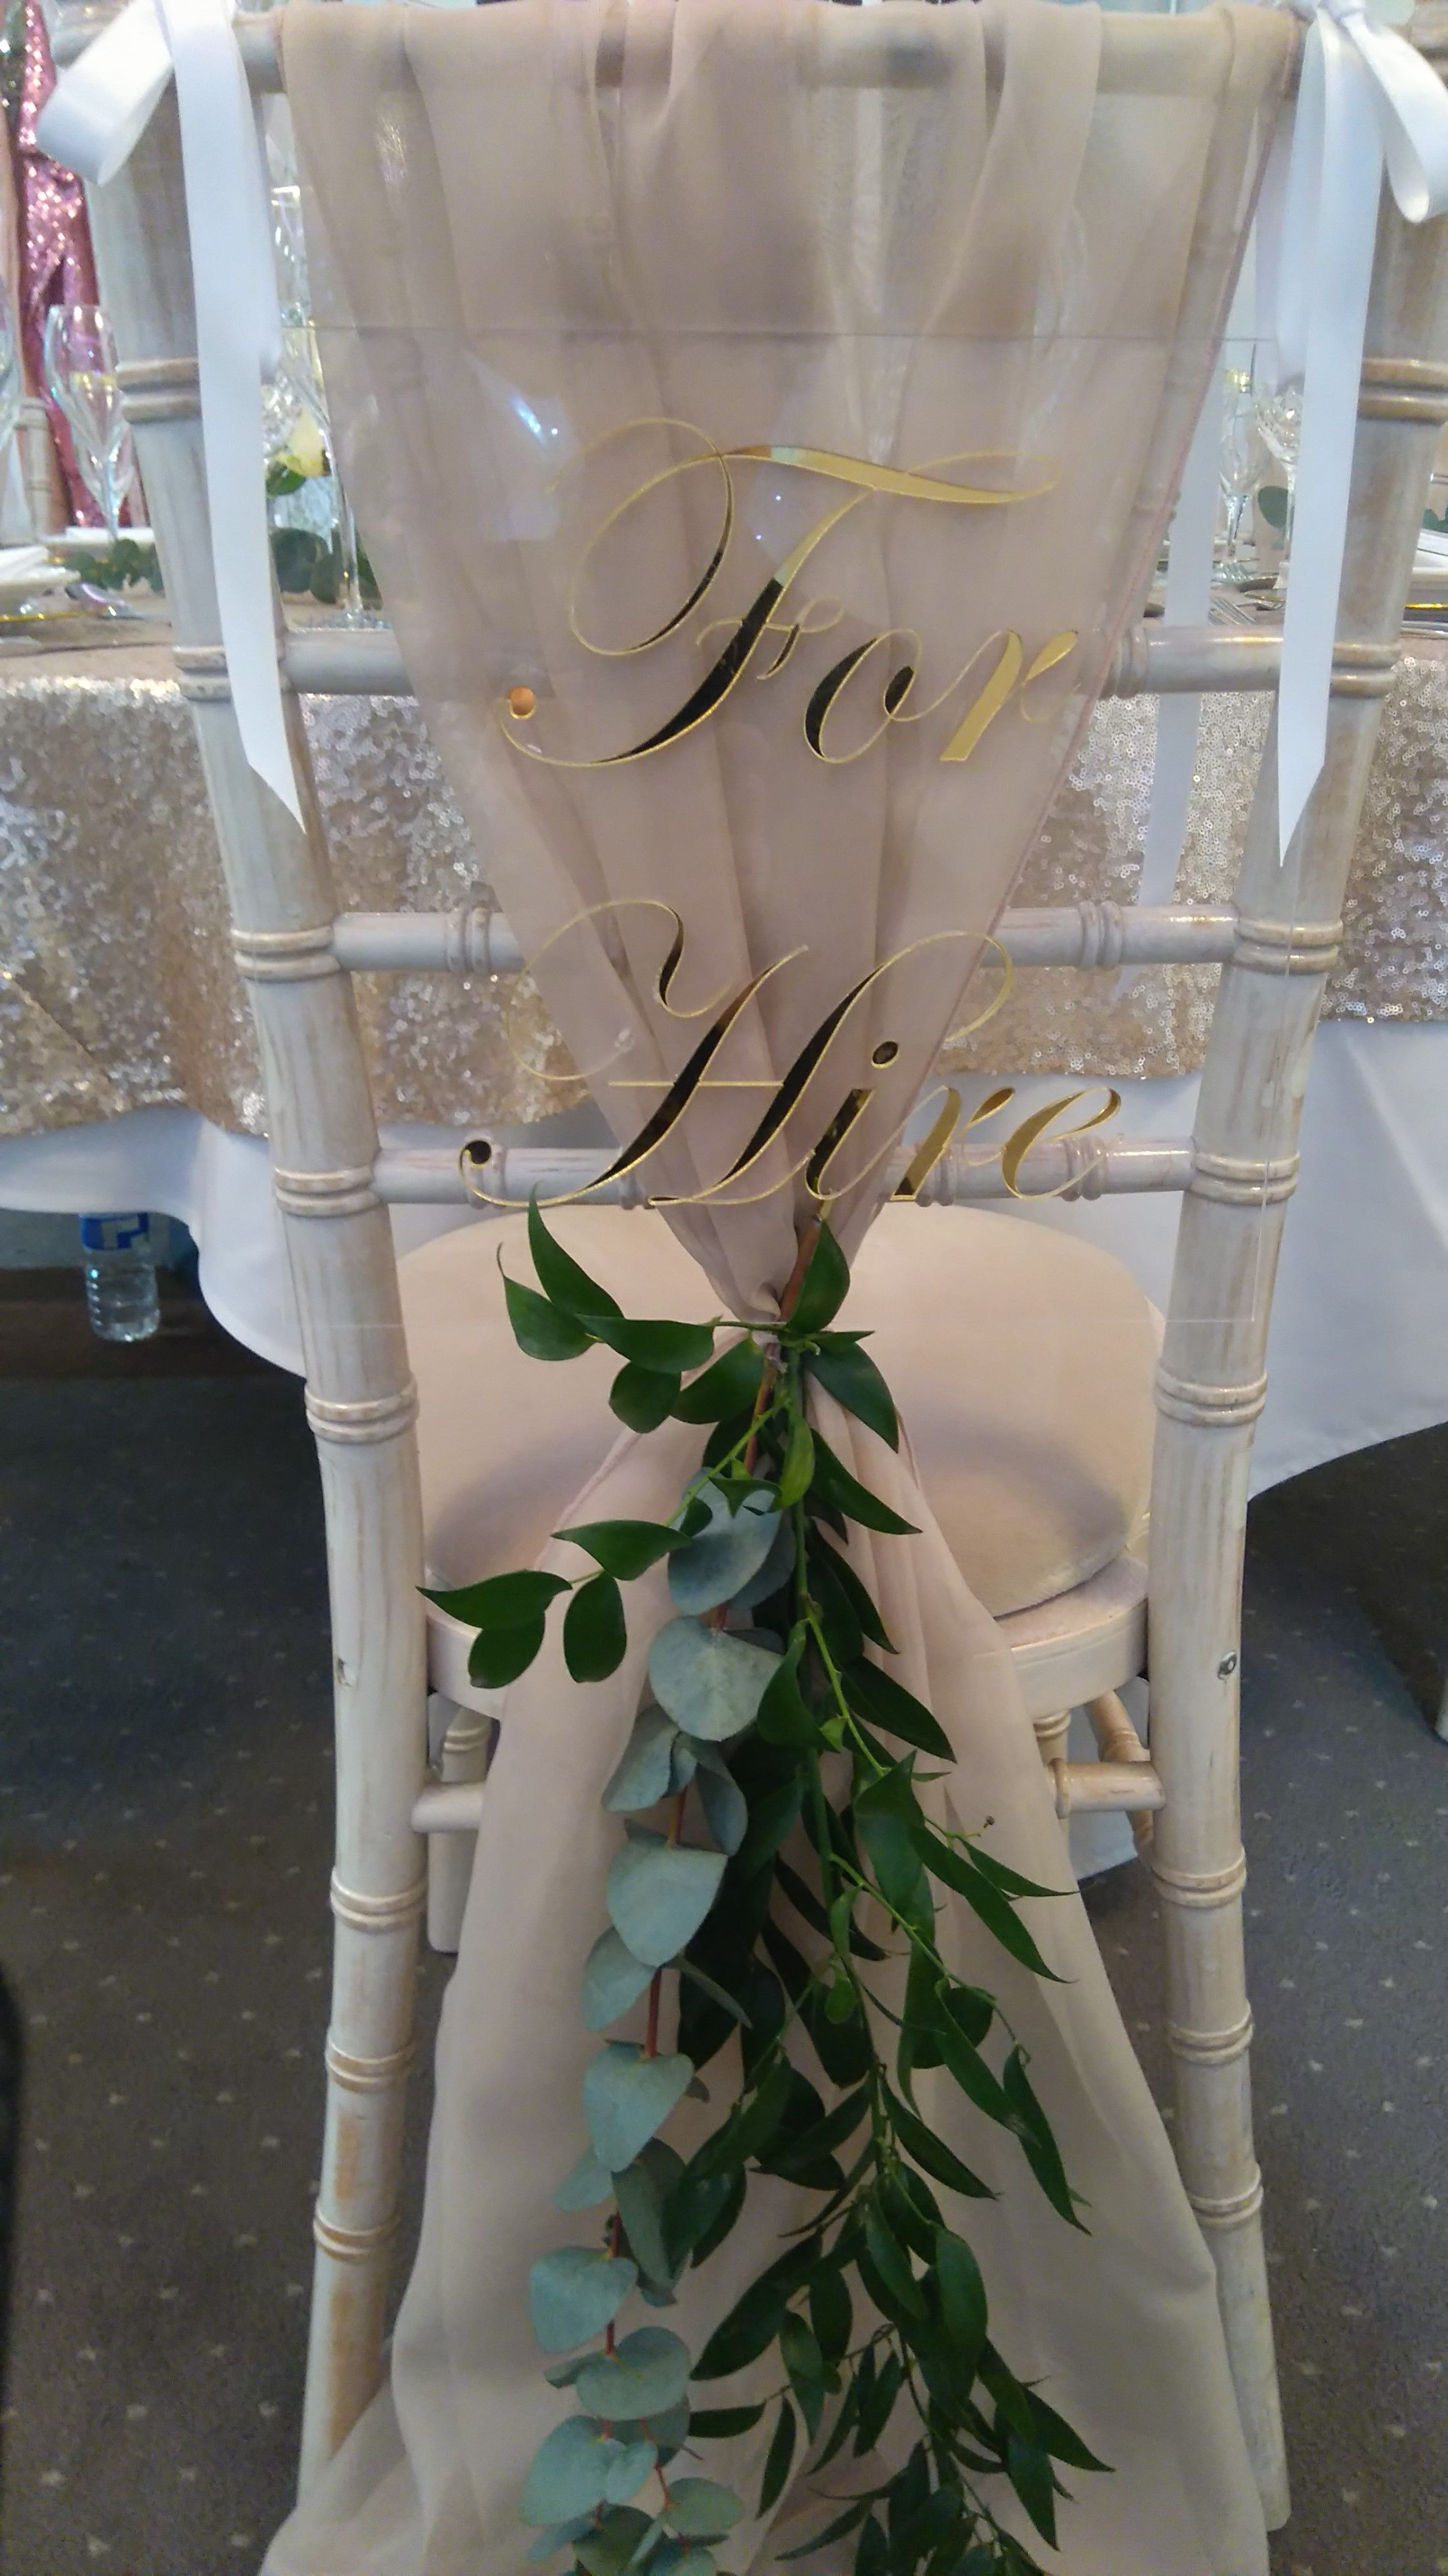 chair covers for hire south wales with arms uk limewash chiavari by simply bows and chairhire chairdrape design wedding